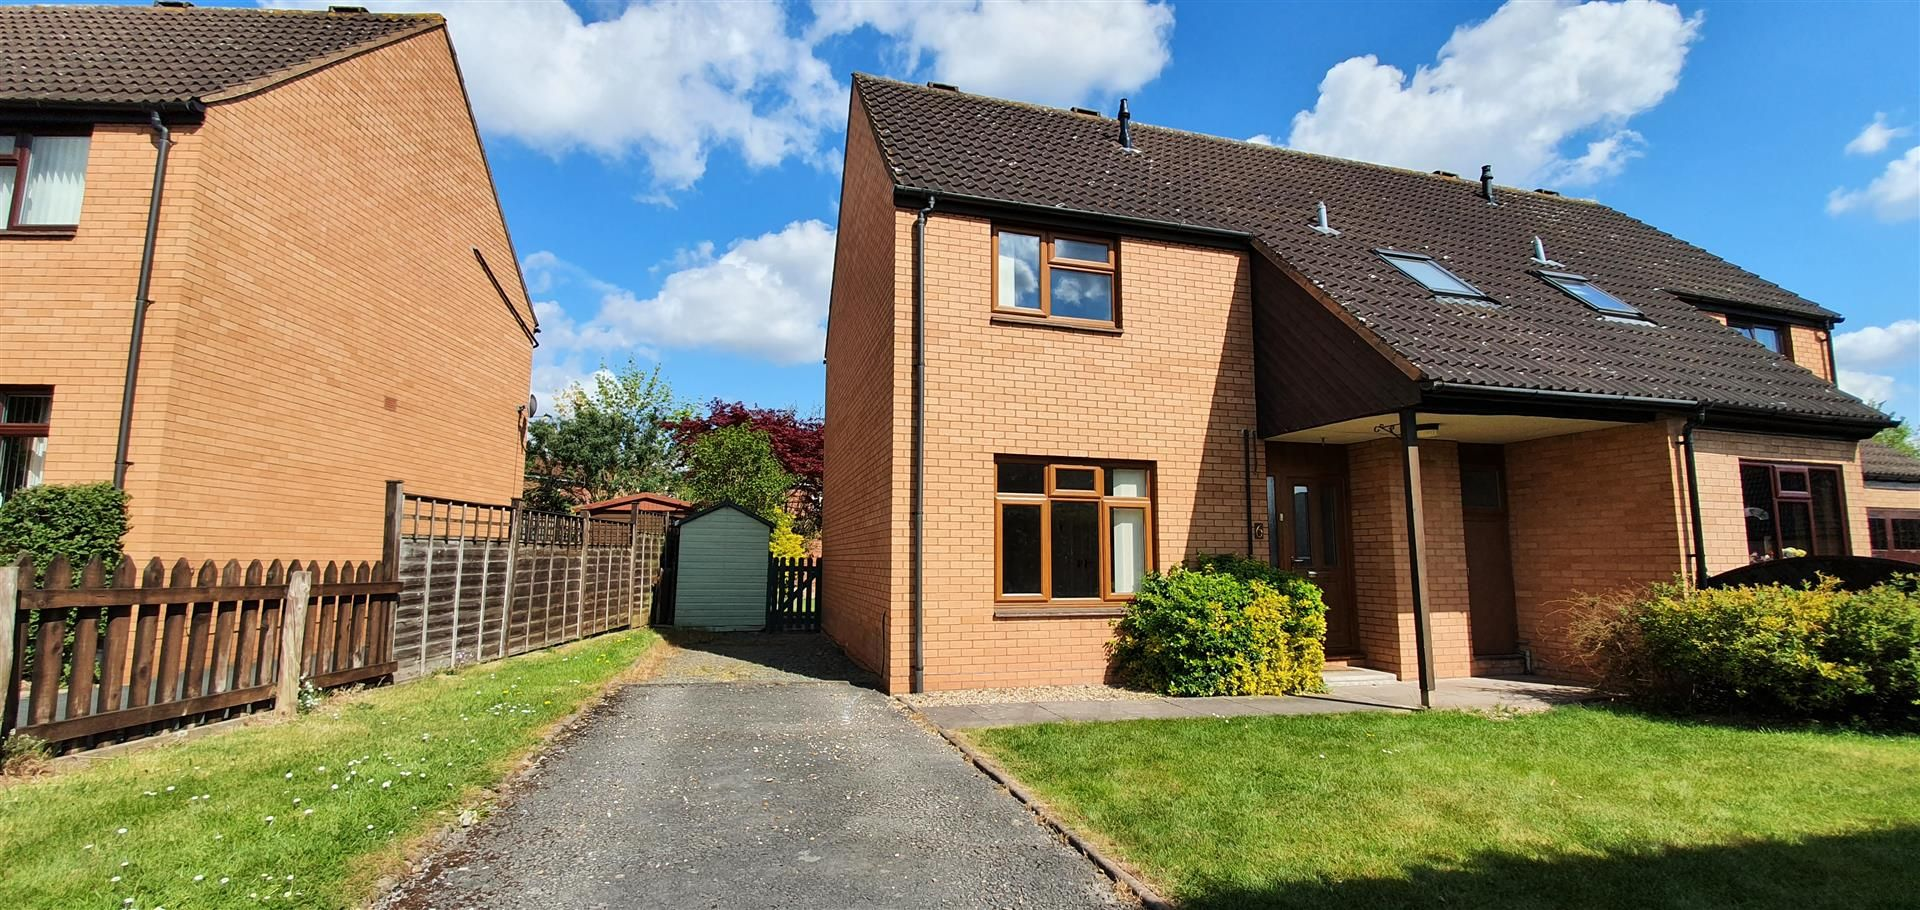 3 bed semi-detached to rent - Property Image 1